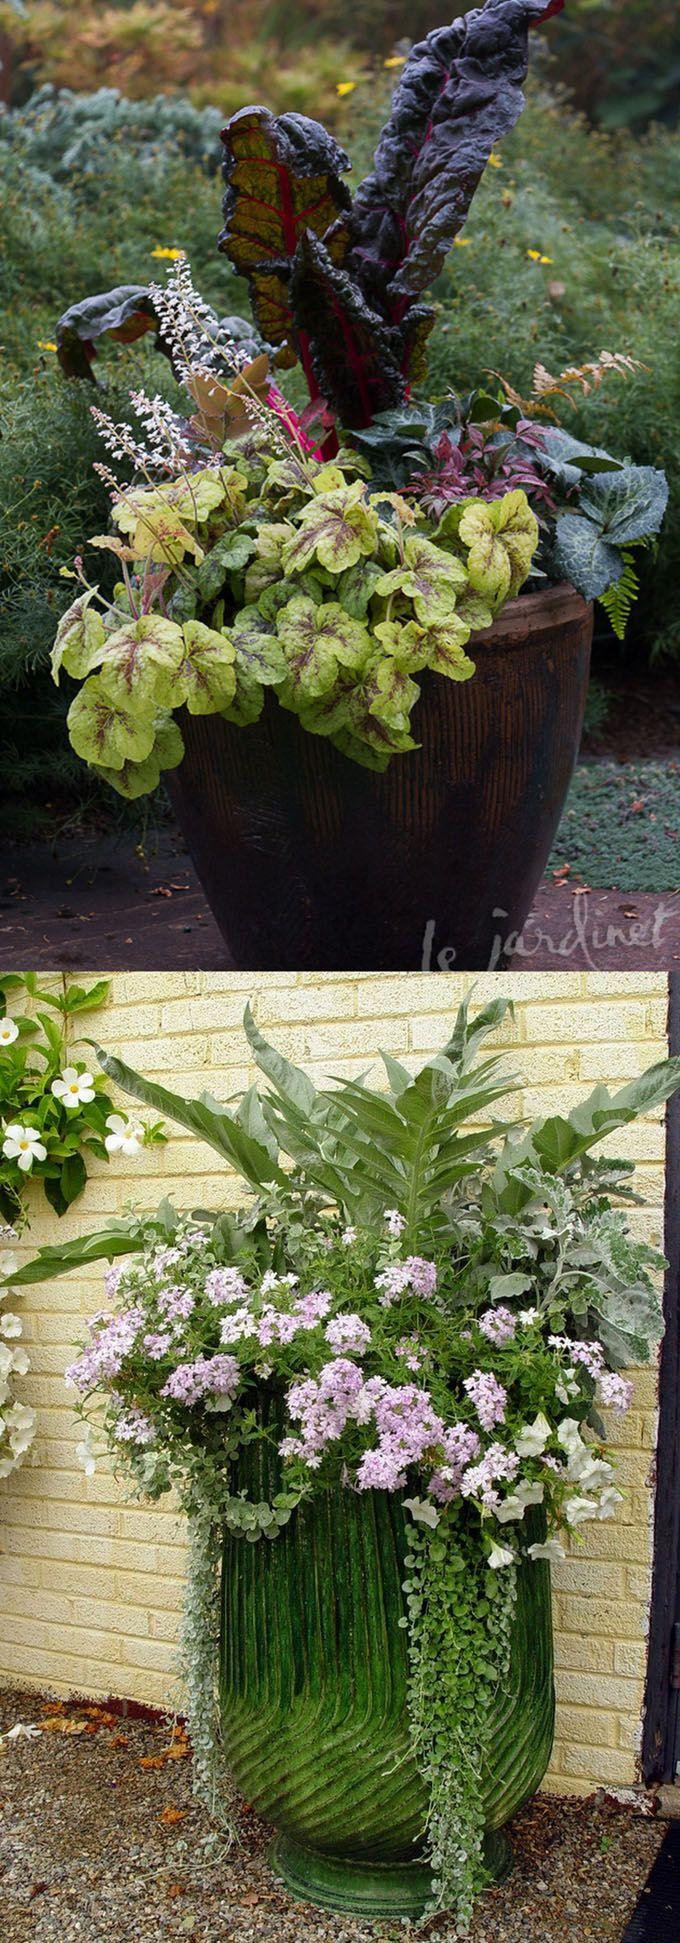 24 stunning container garden designs with plant list for each! Learn the designer secrets to these beautiful planting recipes. - A Piece Of Rainbow http://www.apieceofrainbow.com/container-garden-planting-designs/